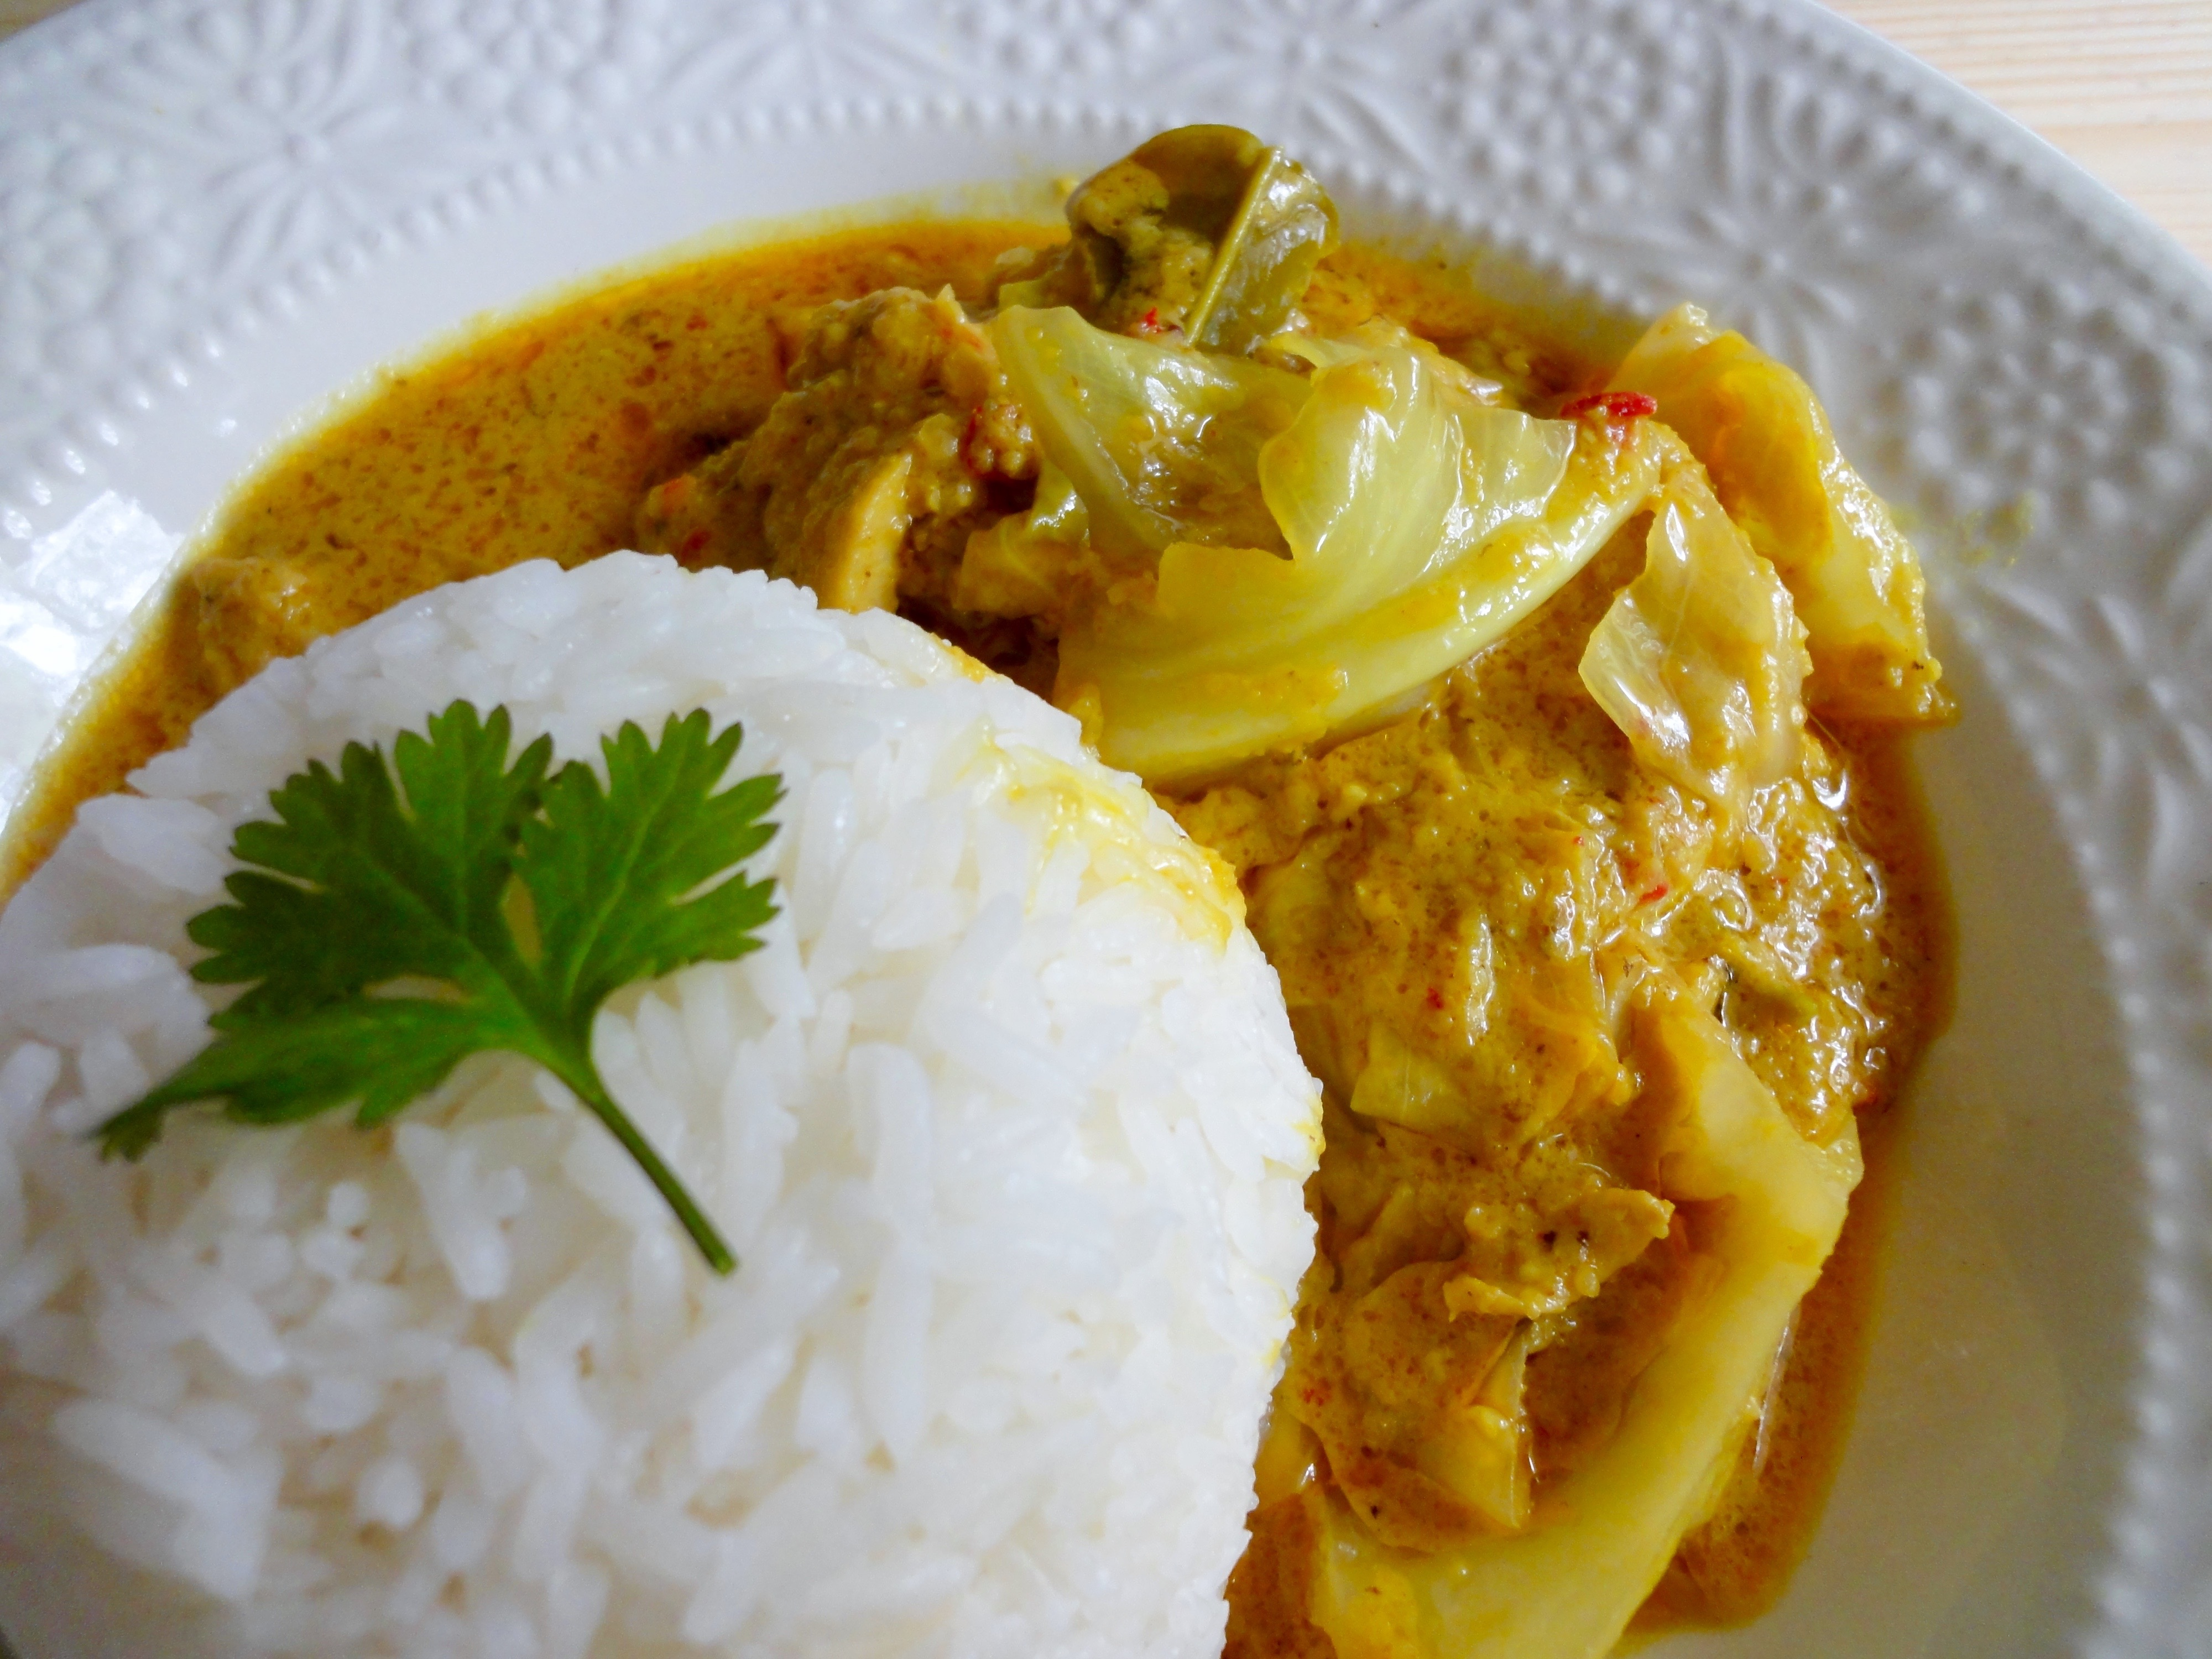 Yellow Curry served with freshly steamed white rice.